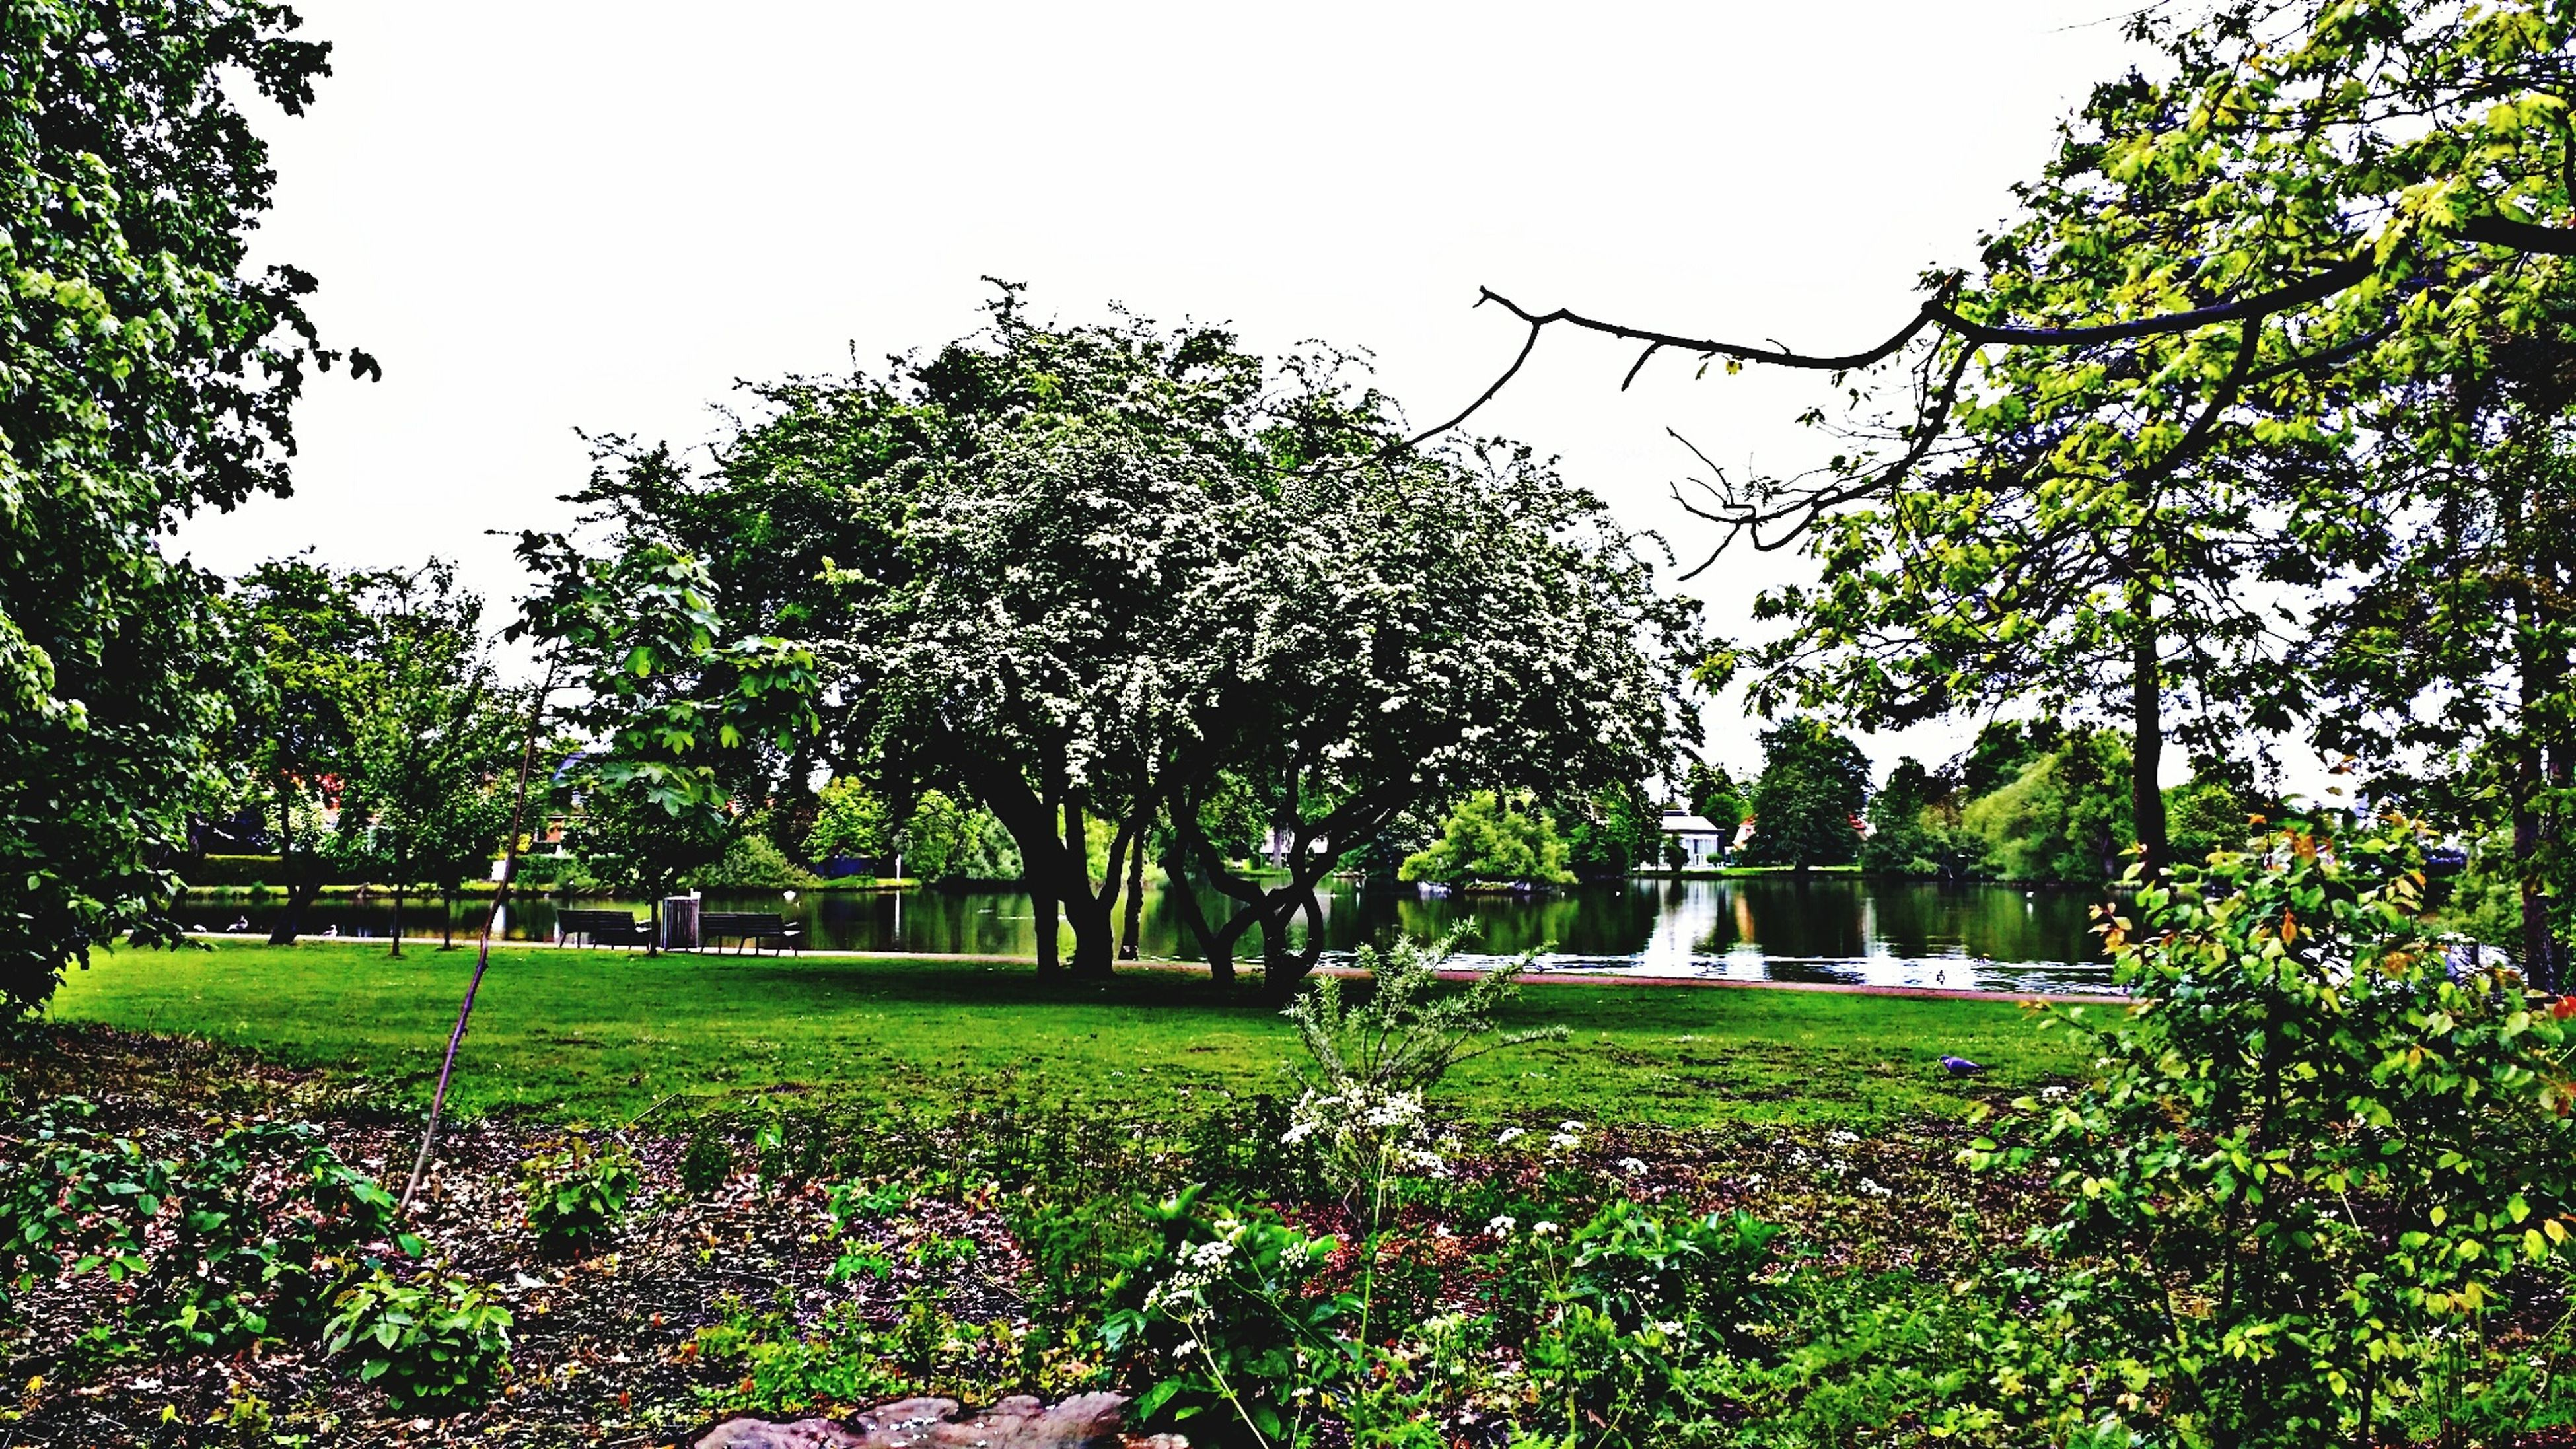 tree, growth, flower, green color, clear sky, plant, nature, beauty in nature, tranquility, grass, park - man made space, tranquil scene, freshness, formal garden, leaf, day, branch, scenics, field, garden